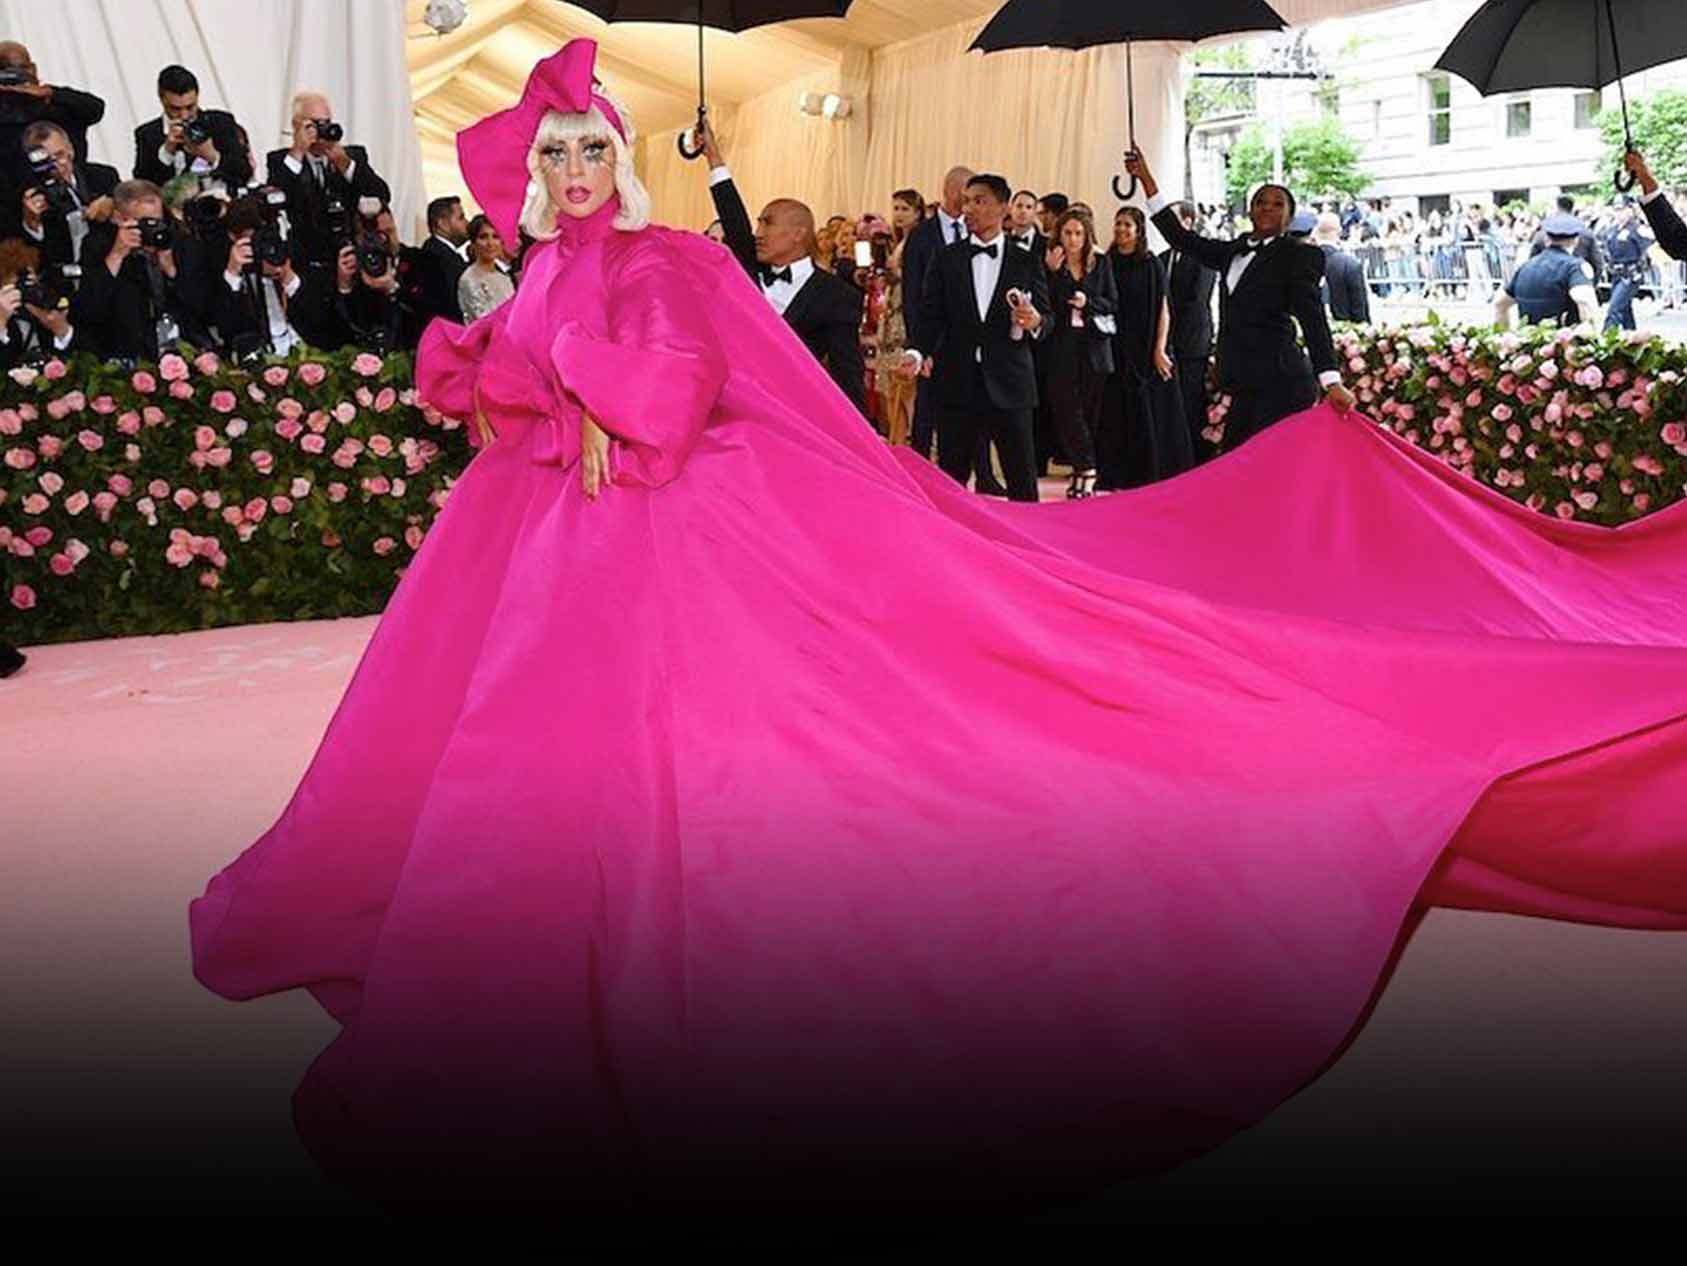 The Met Gala 2020 Theme Has Been Announced and it's a Doozy